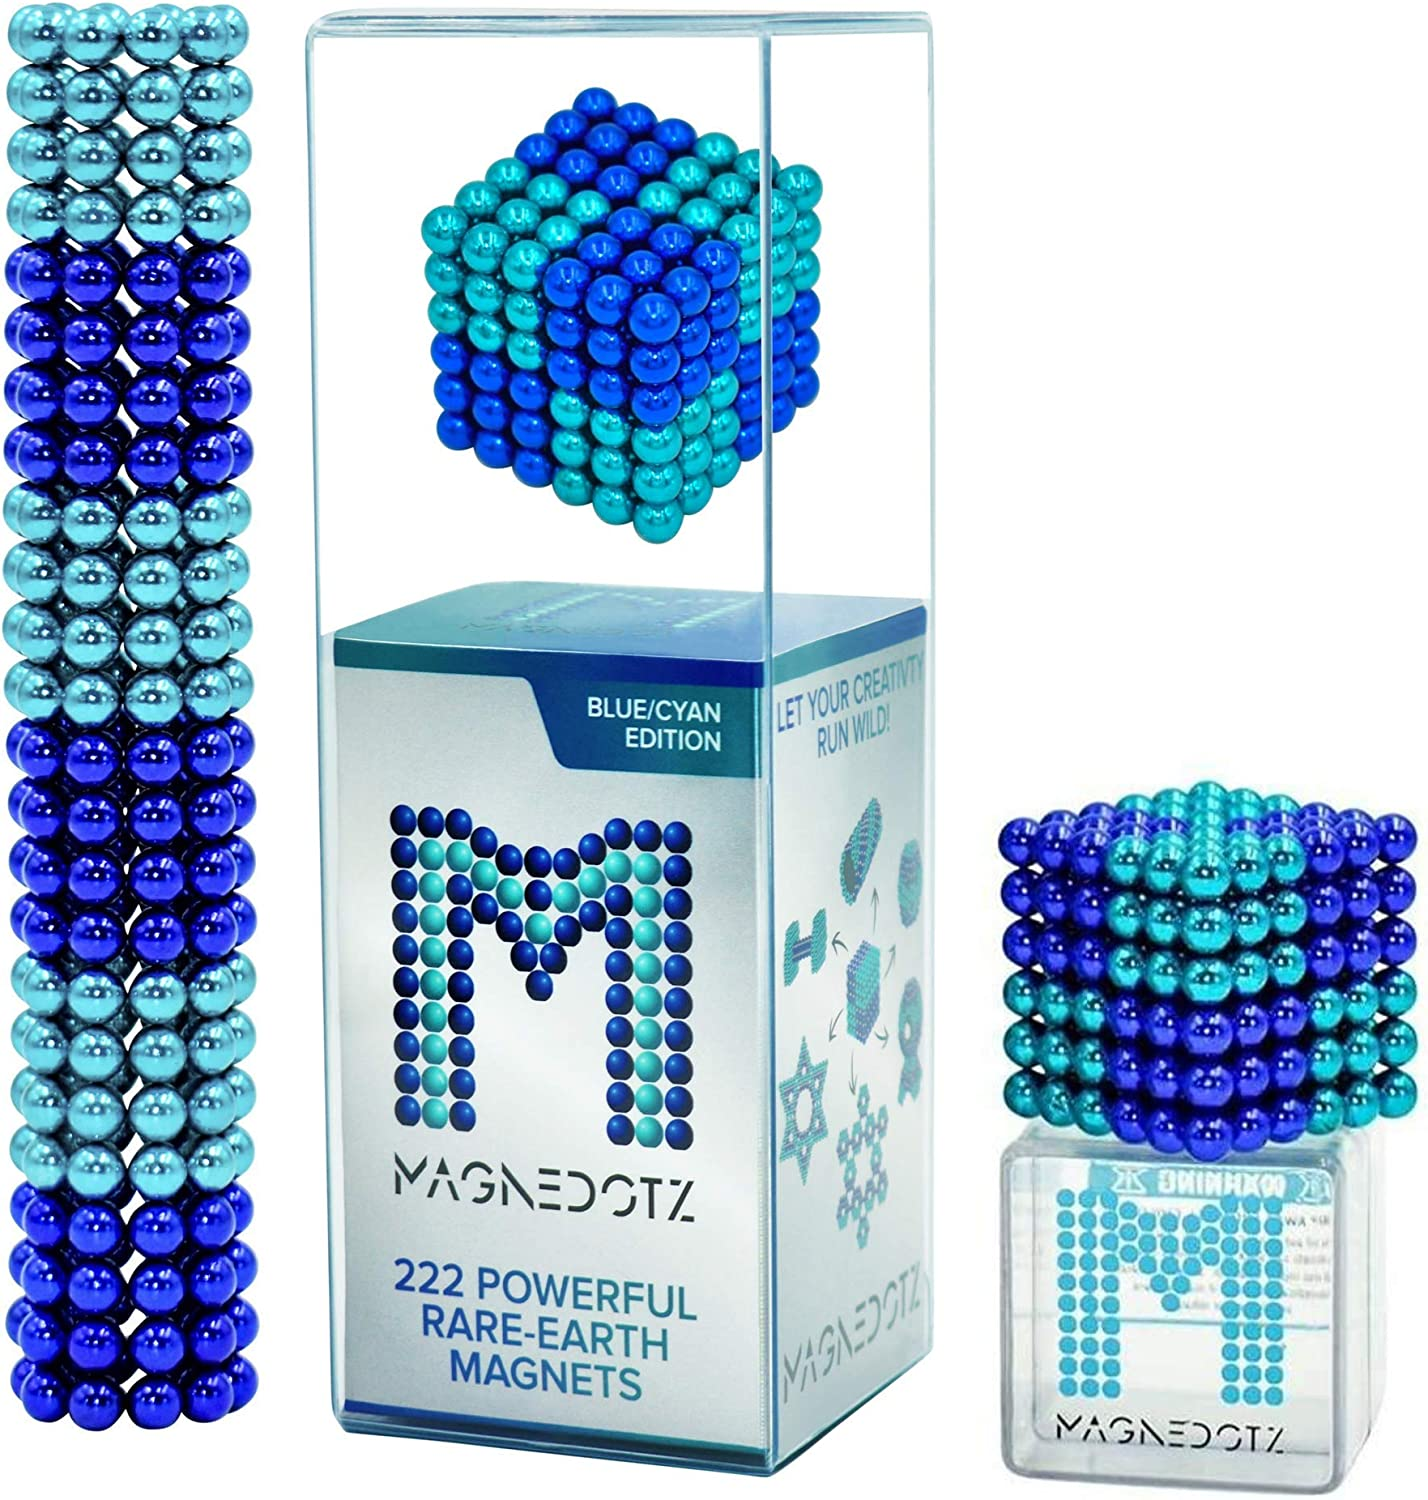 Blue // Cyan Edition MagneDotz Magnetic Balls 5mm Fidget Gadget Toys Rare Earth Magnet Marbles Desk Toy Games Magnetic Beads Stress Relief Toys for Adults